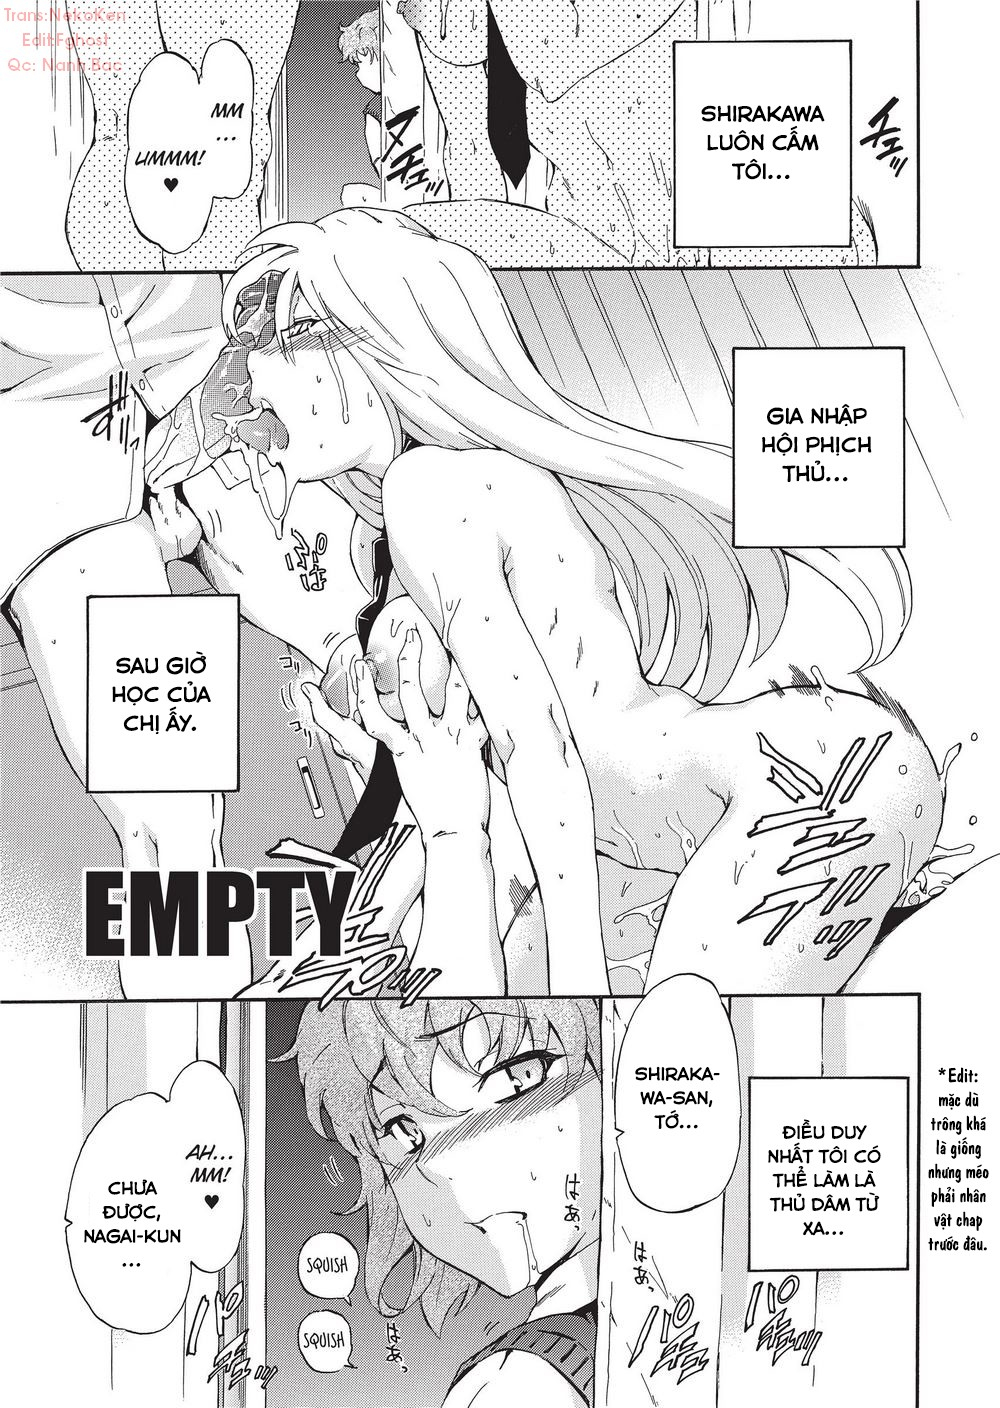 HentaiVN.net - Ảnh 2 - Girl's Shock!! - Chapter 5